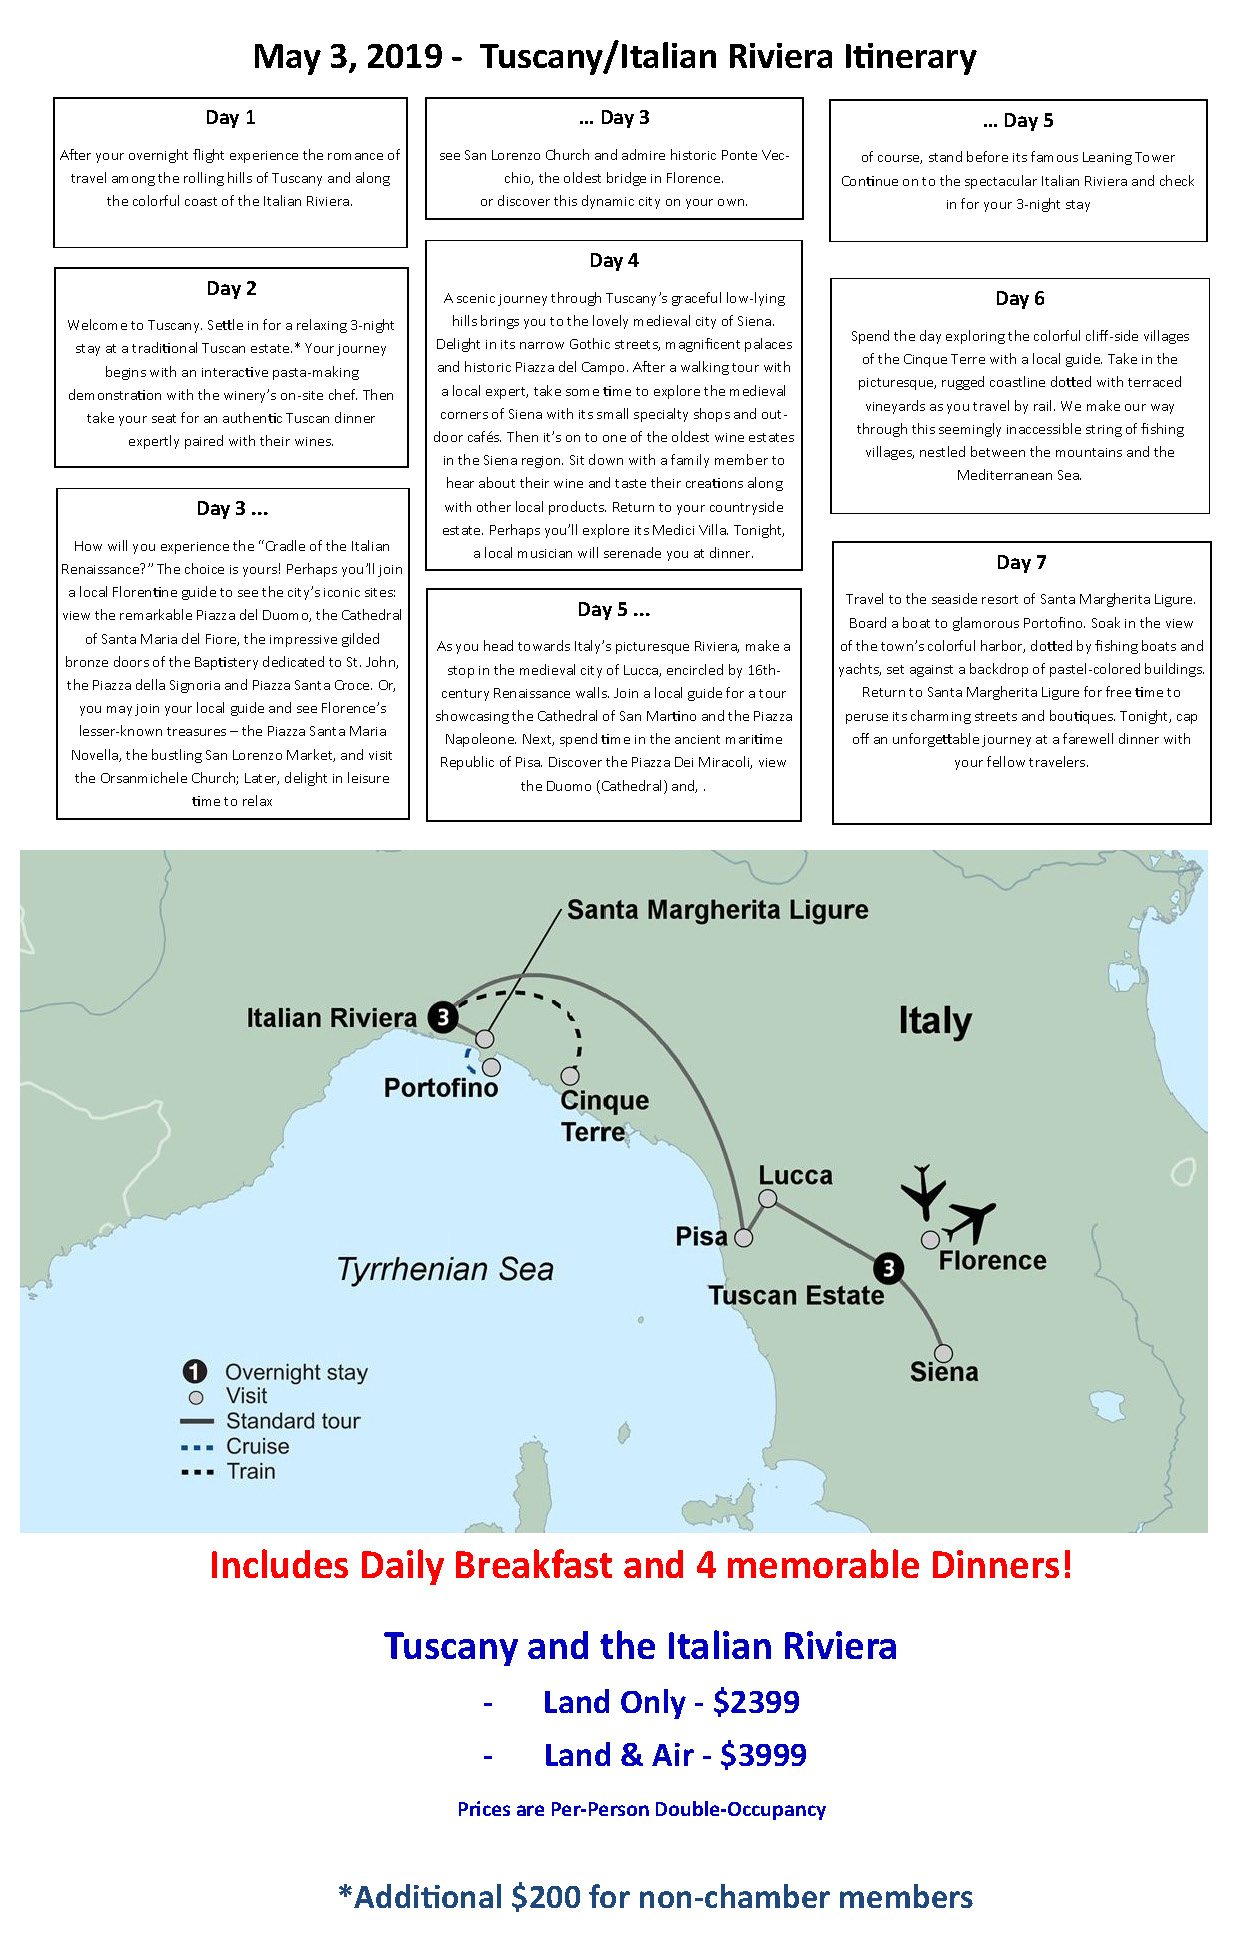 Tuscany and the Italian Riviera_Page_2